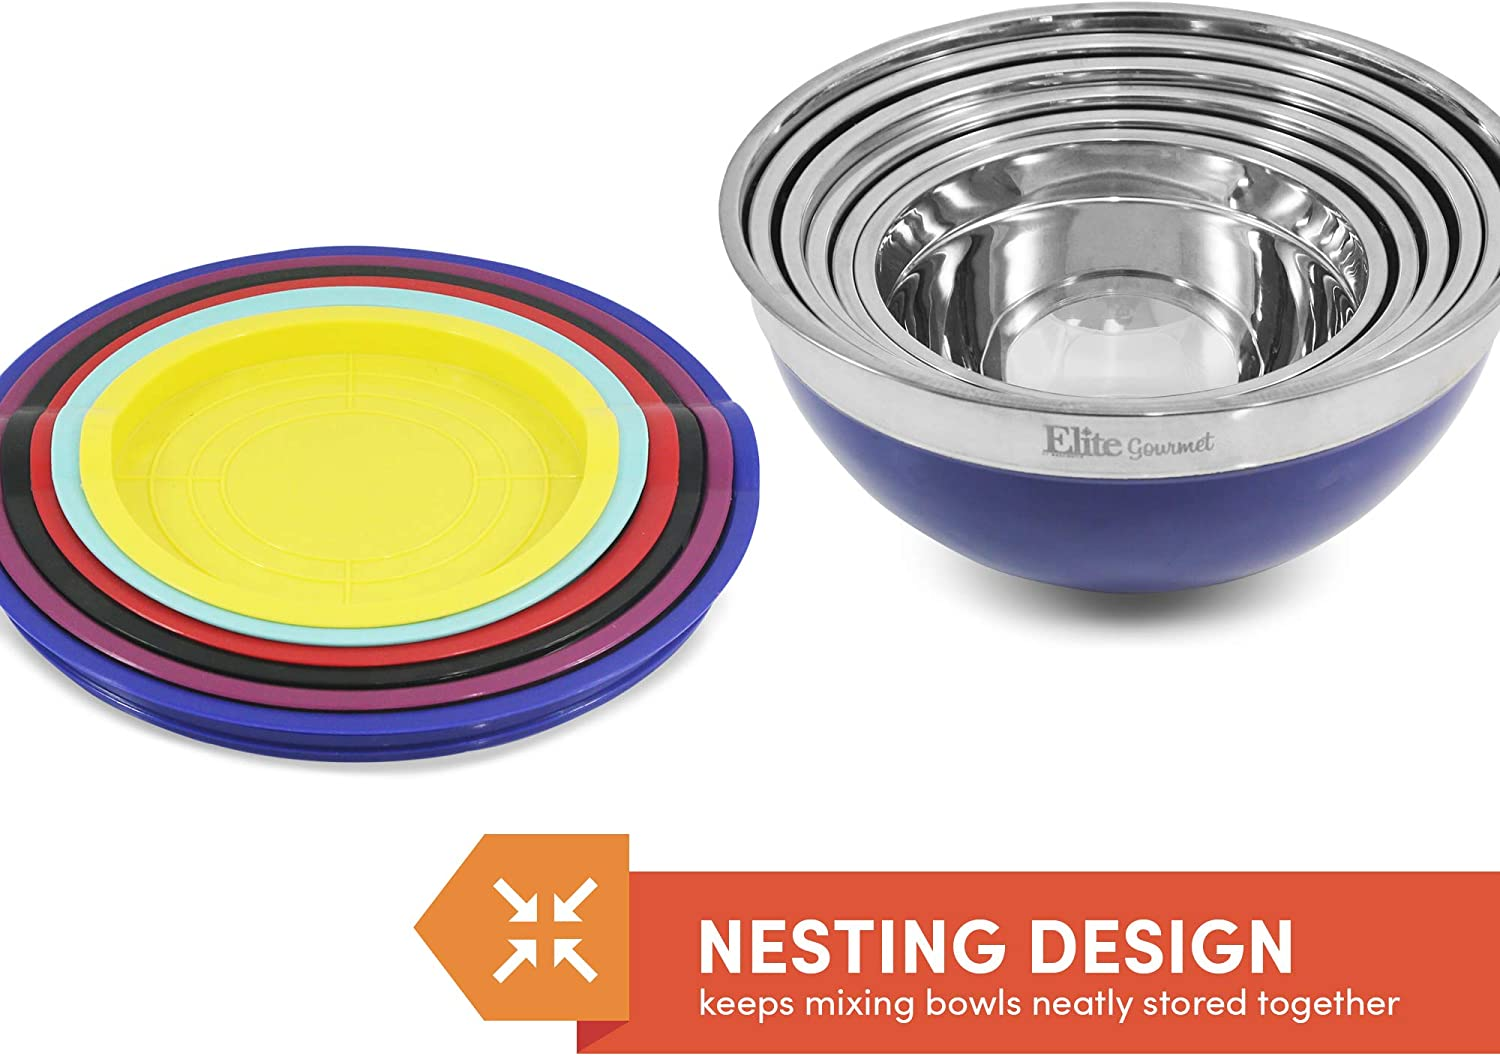 Elite Gourmet Ebs-0012 Colored Mixing Bowls With Lids 12Pc ebs0012